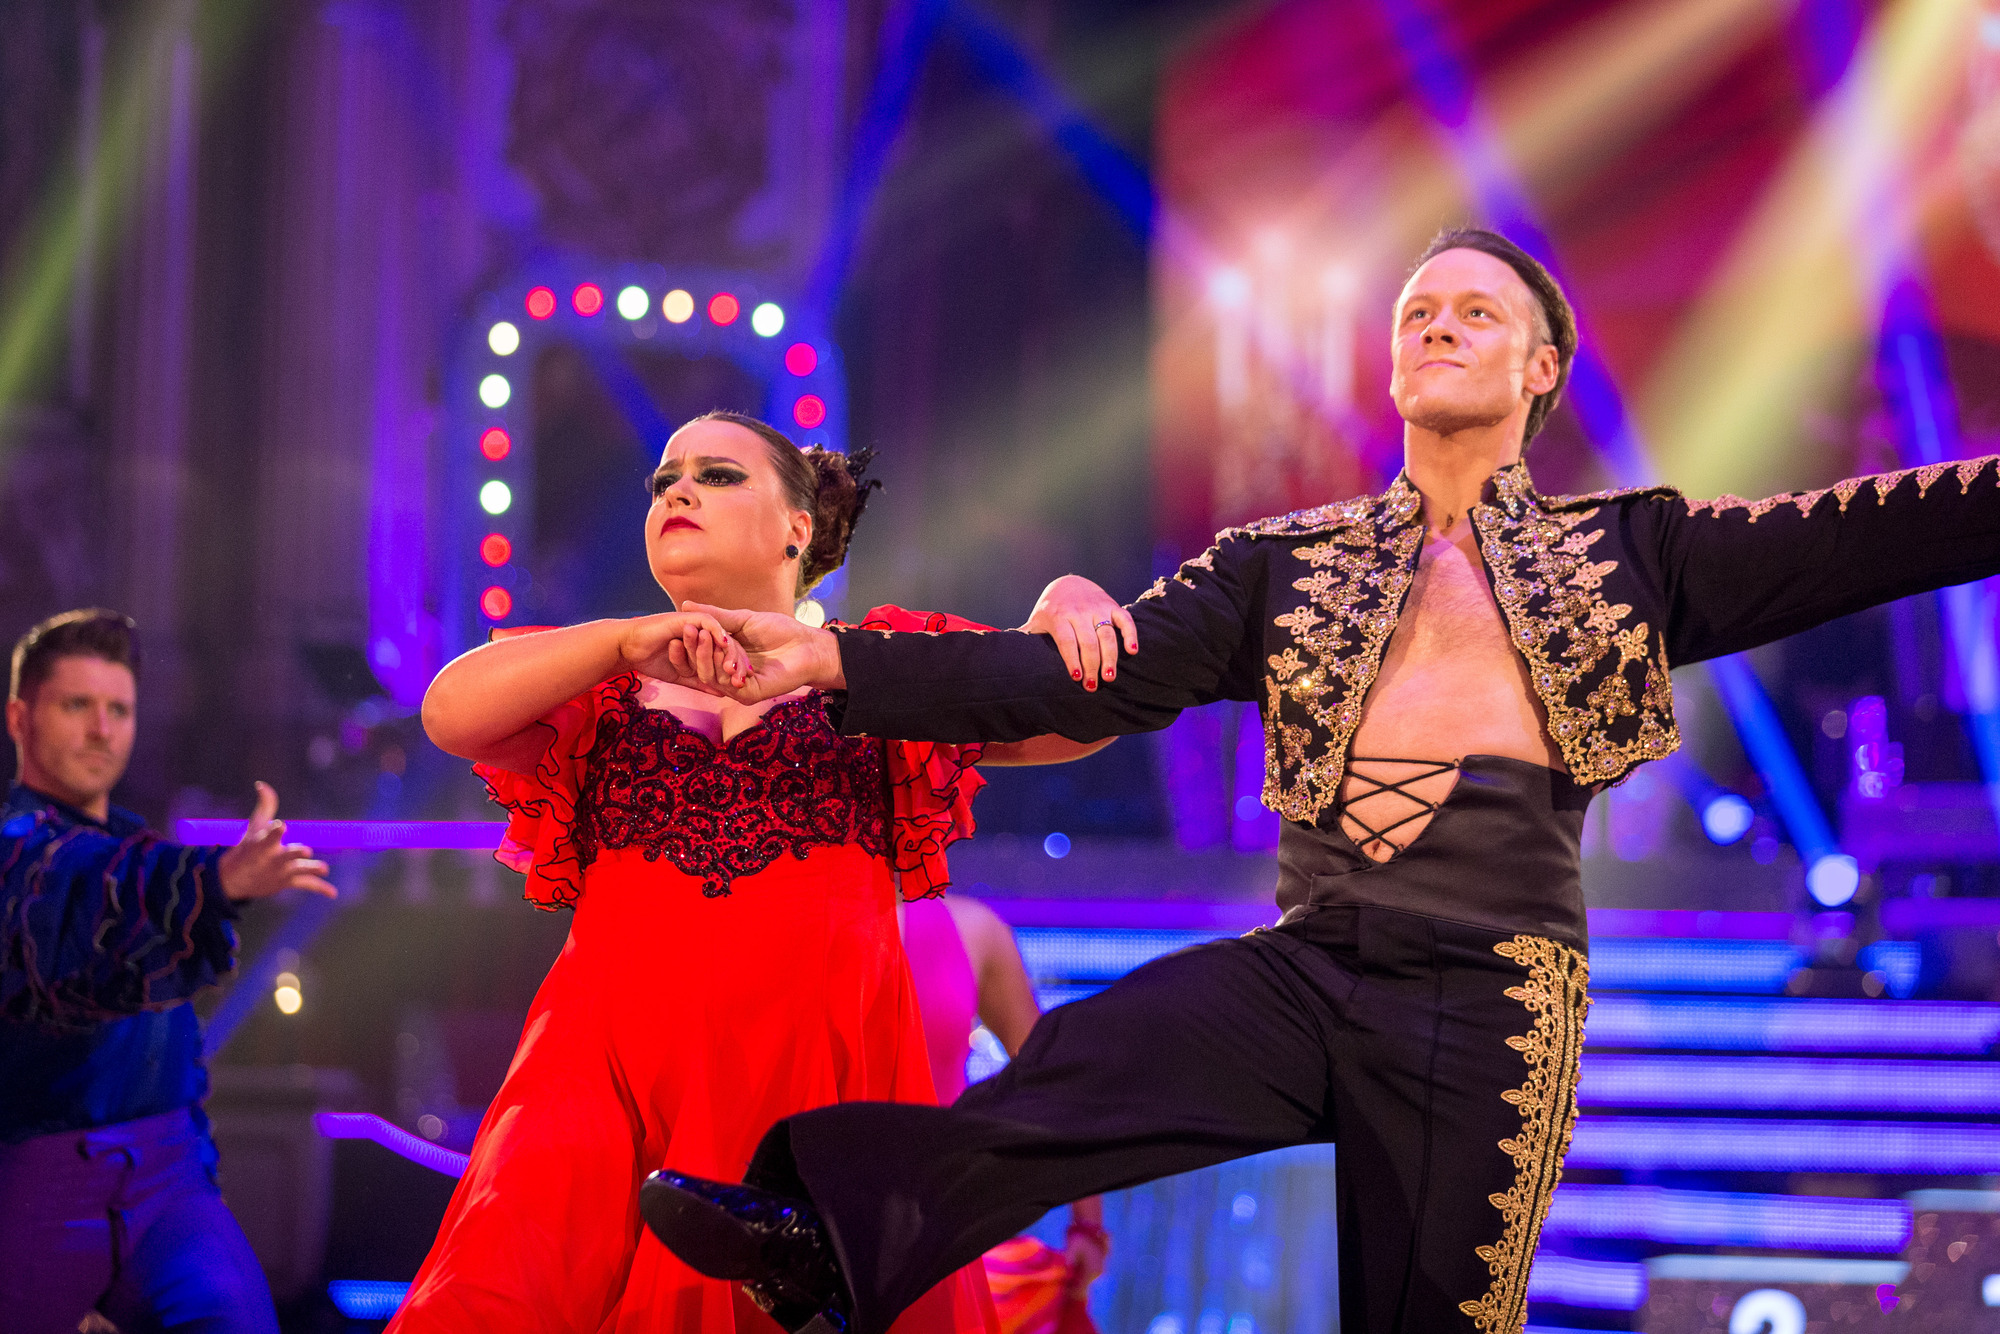 Susan Calman's Strictly Come Dancing journey comes to an end